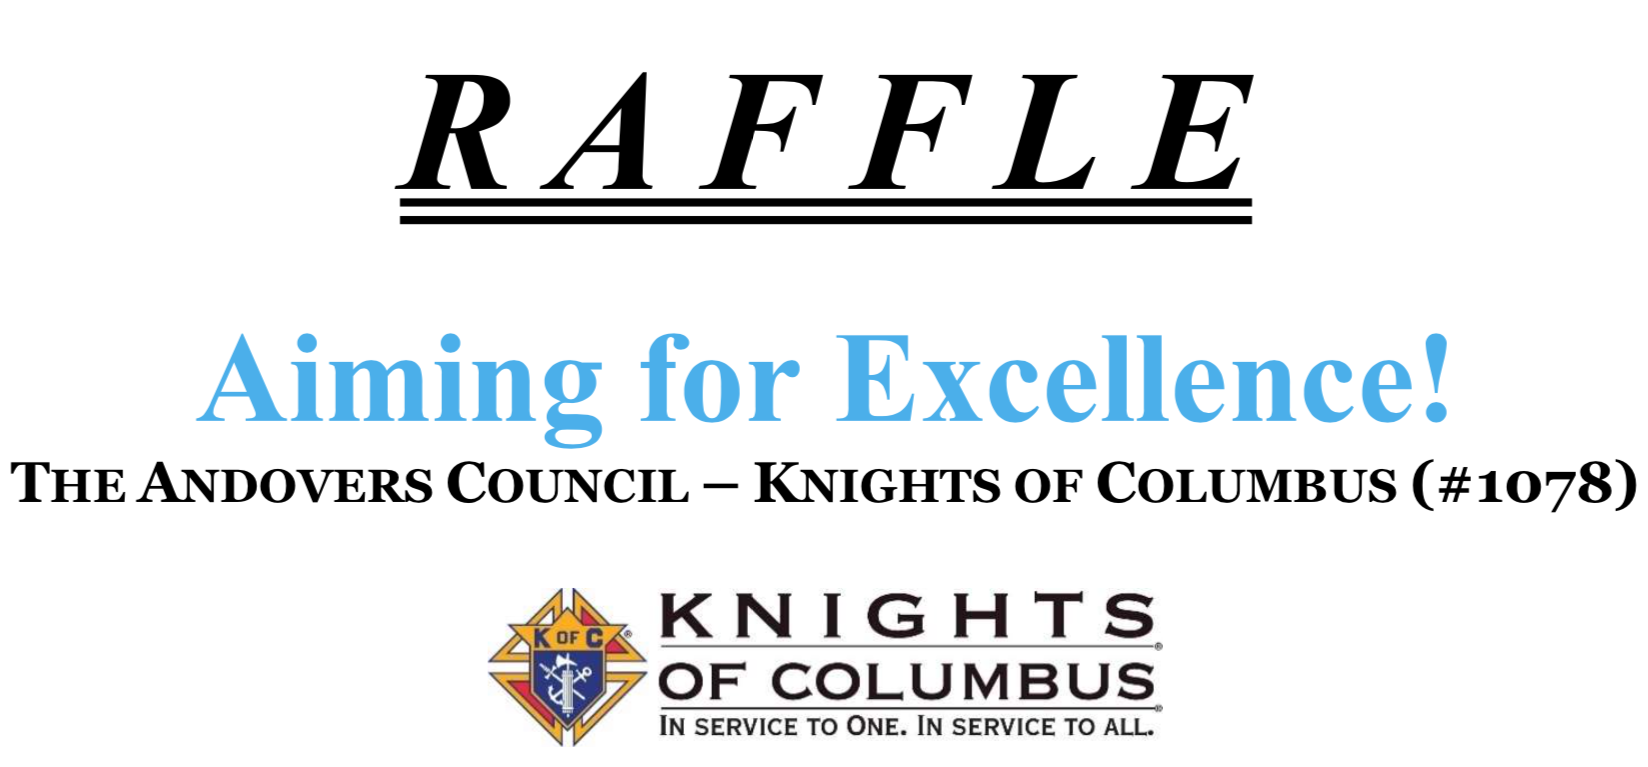 Fall Raffle in support of St. Augustine School, St. Michael School, and our Council